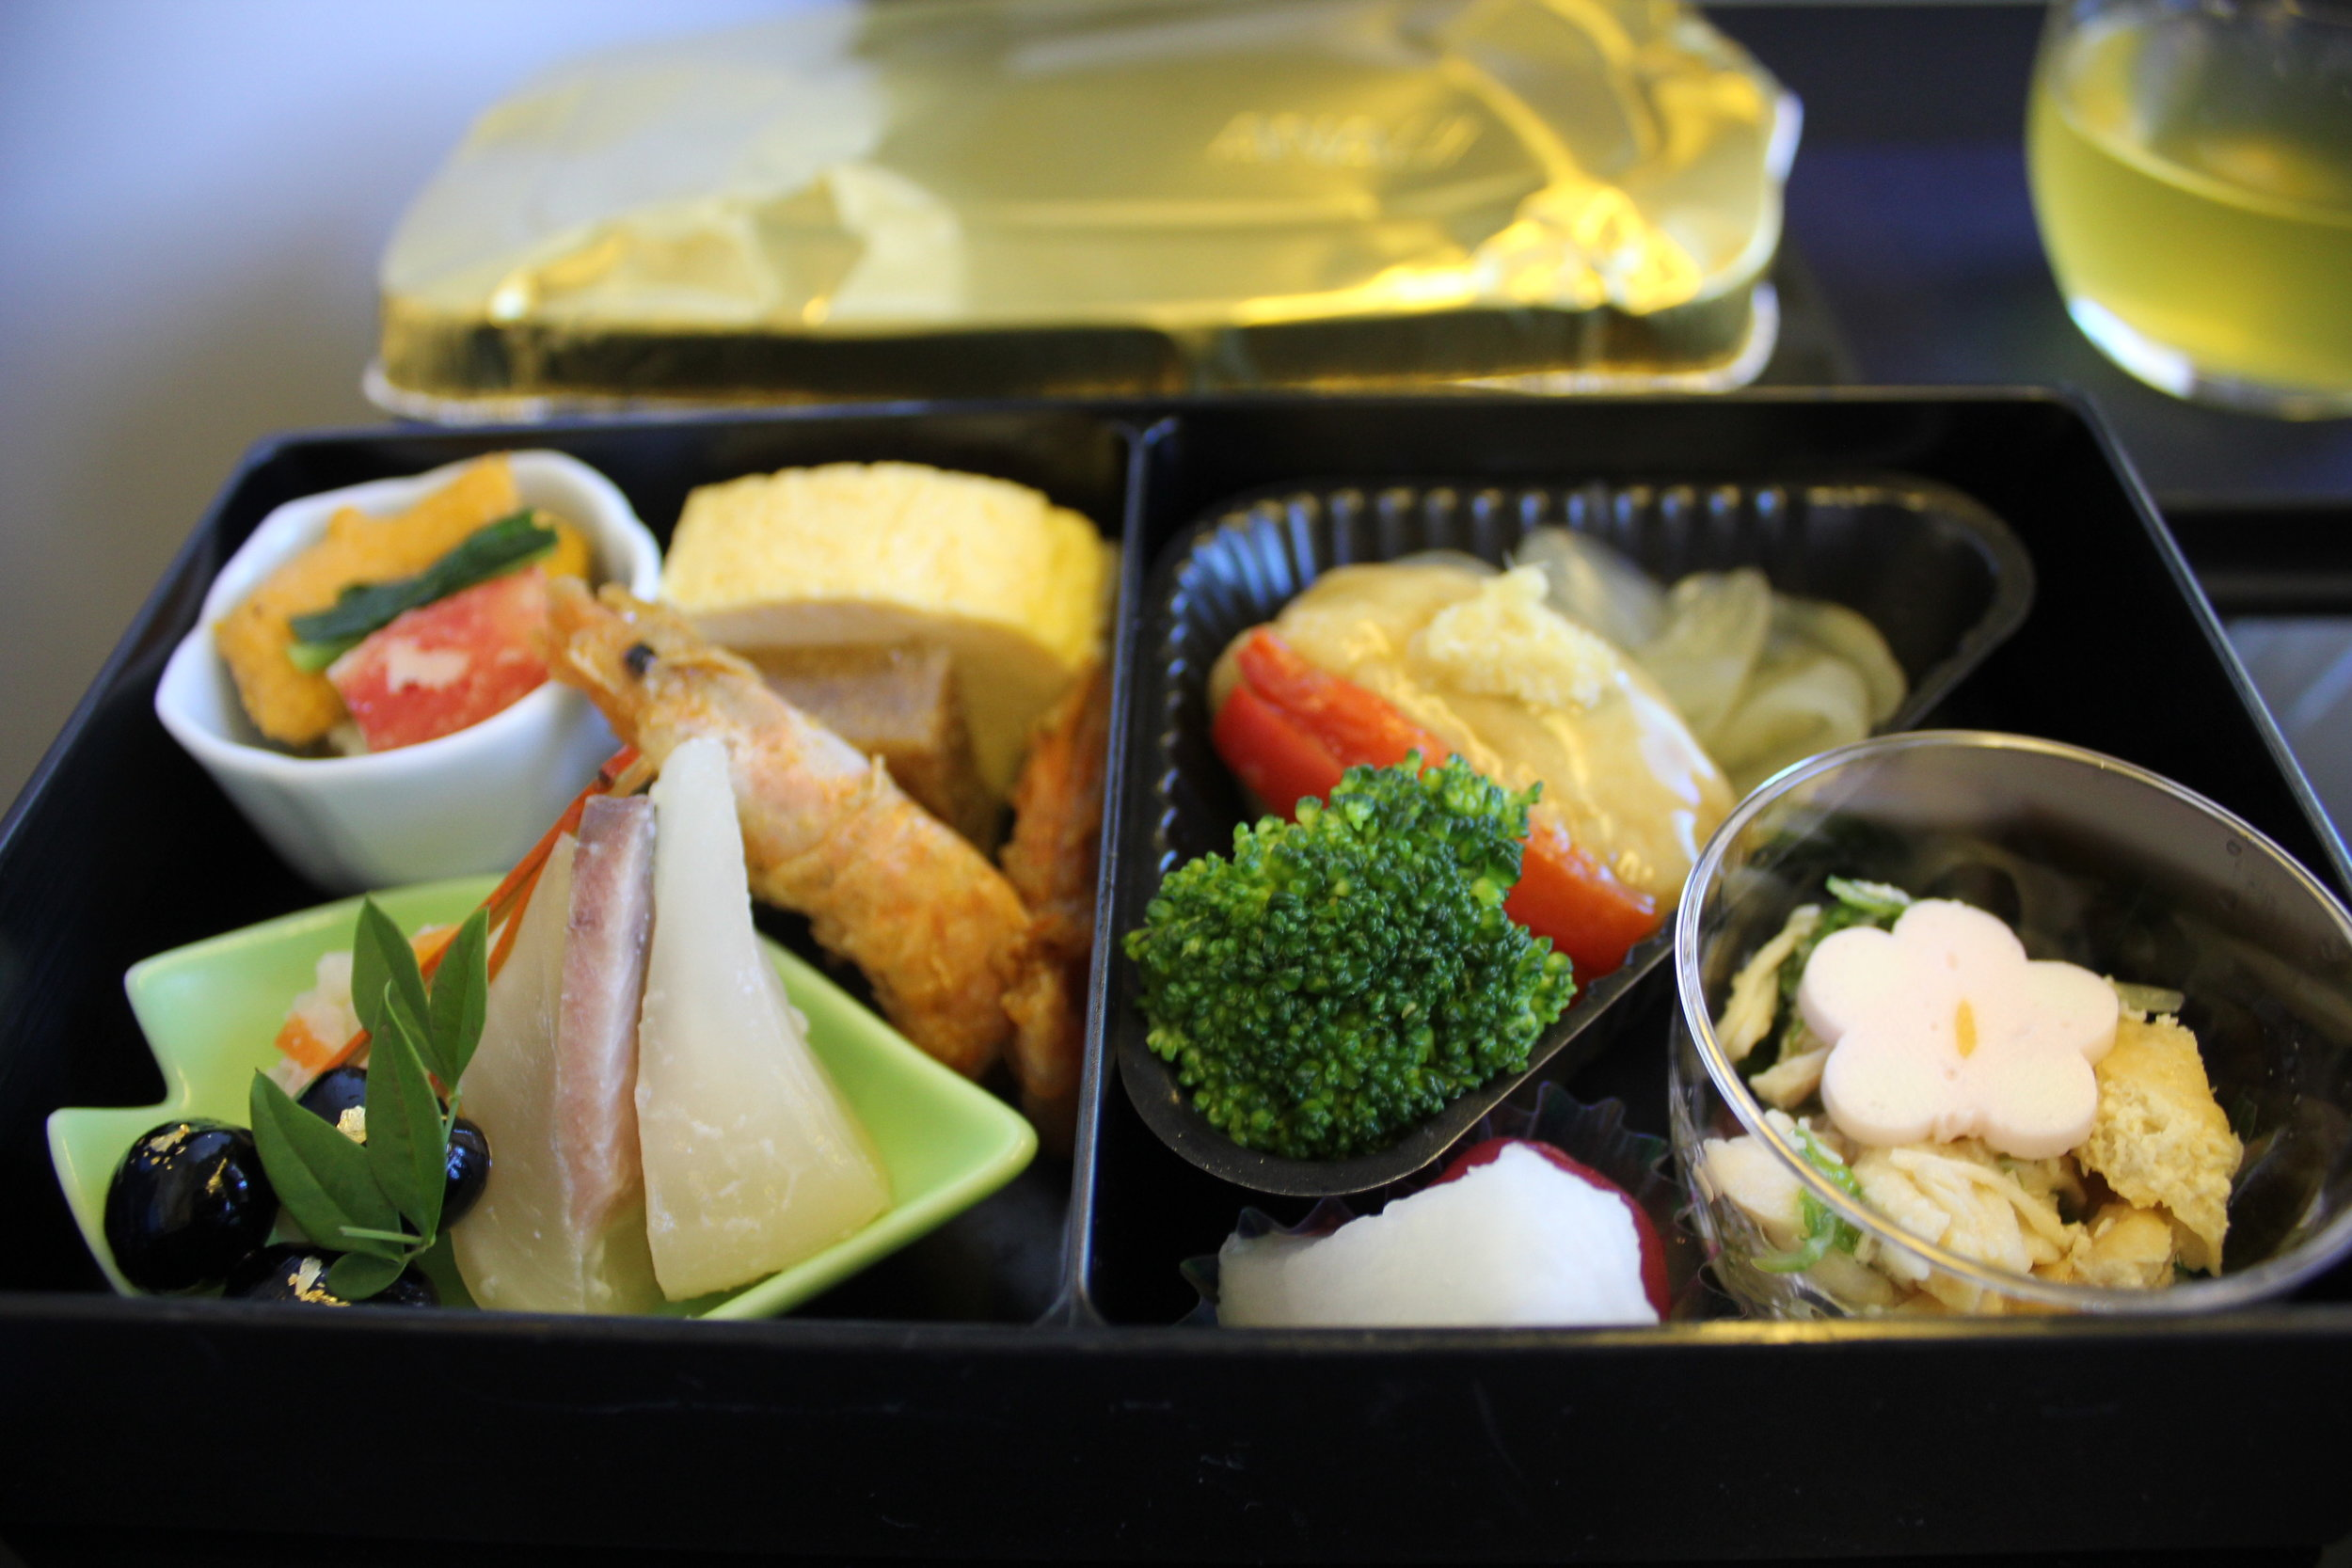 ANA 777 business class – Bento box with assorted delicacies